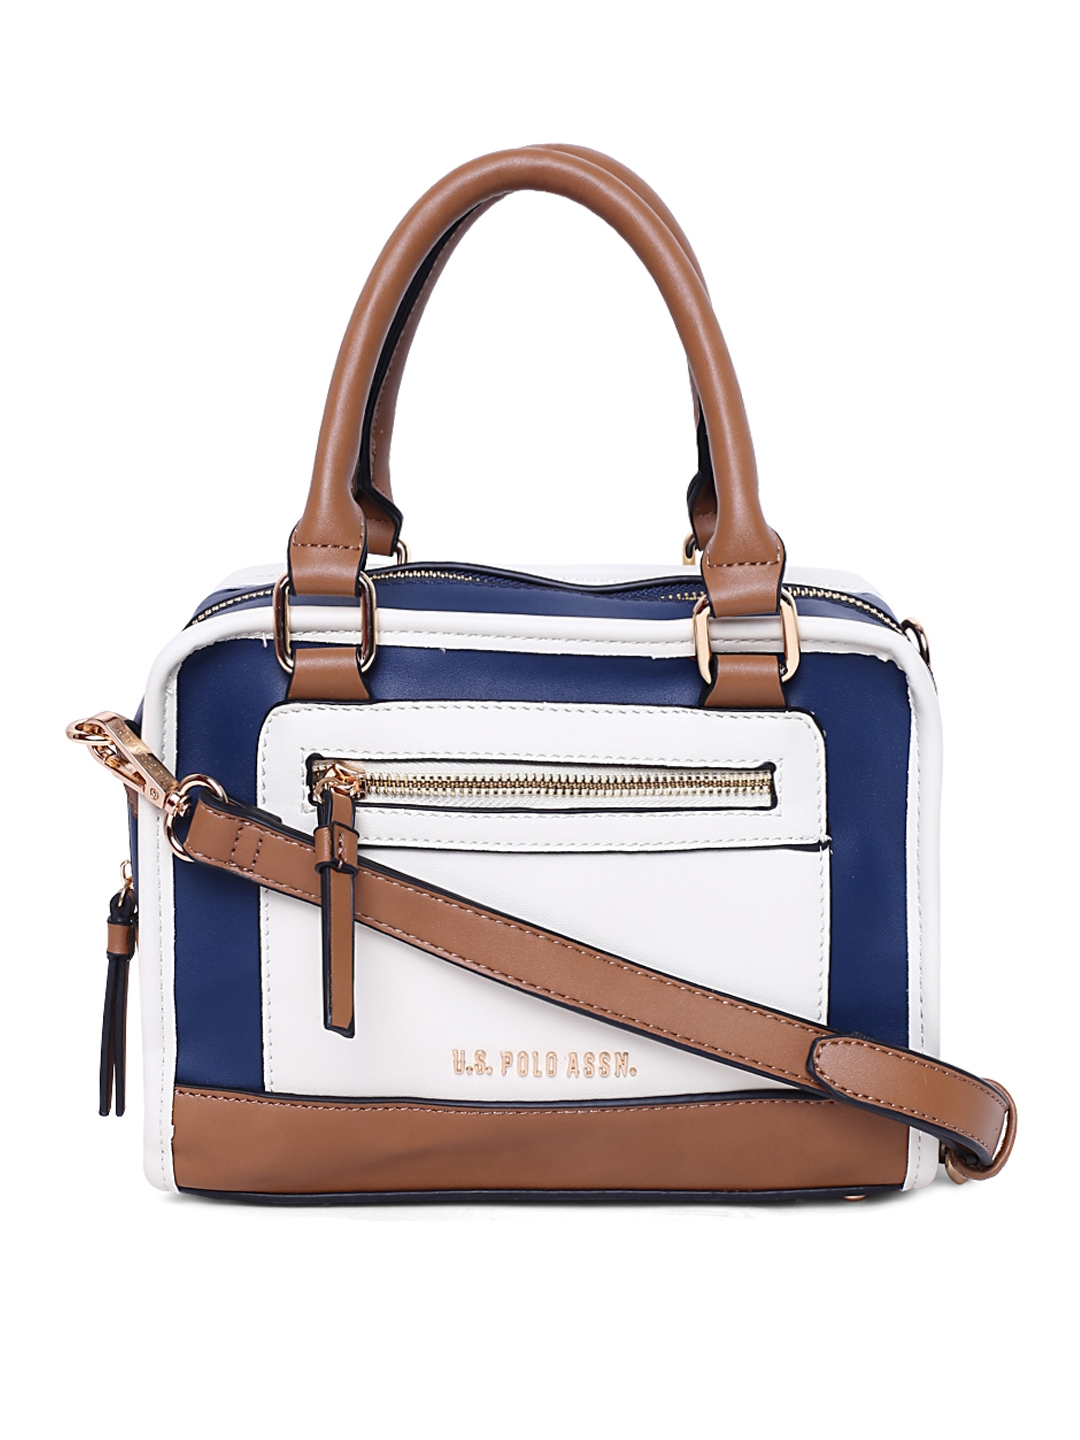 Buy U.S. Polo Assn. Women Off White   Blue Colourblocked Handheld ... 0697eb05258e0